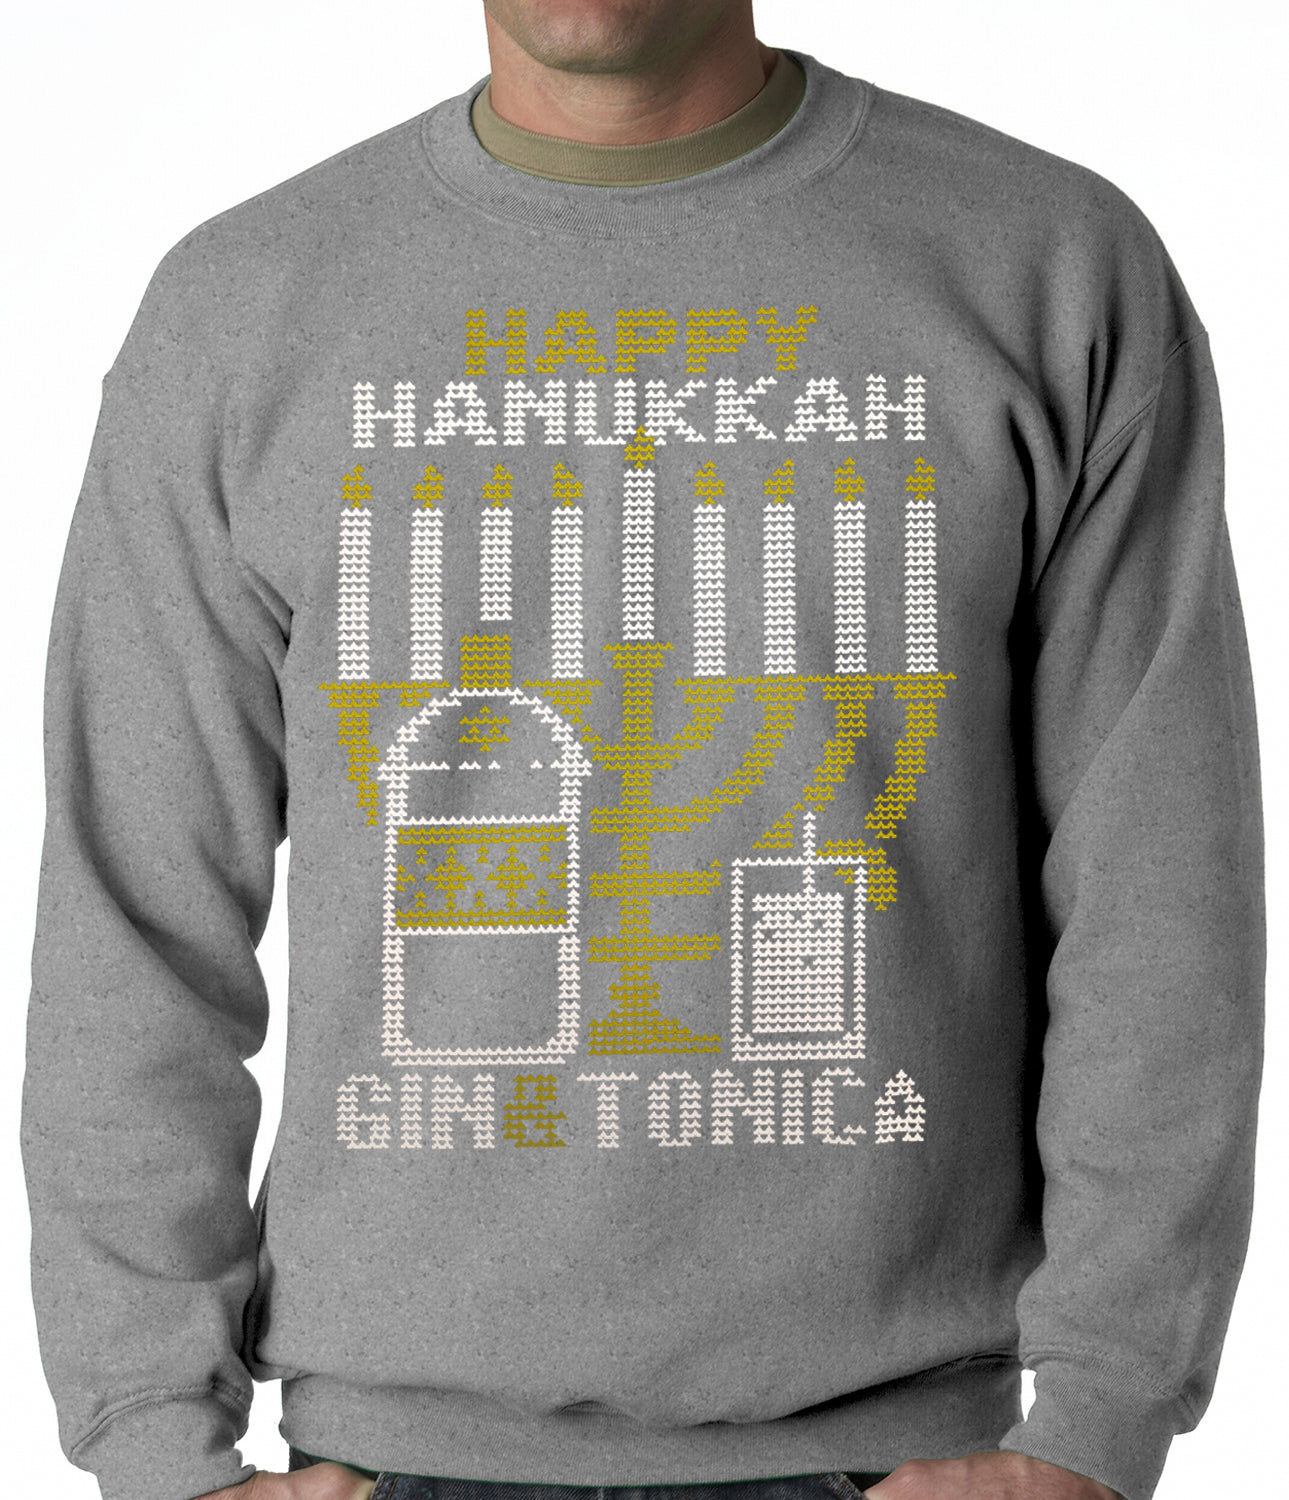 Ugly Hanukkah Sweater - Gin and Tonica Golden Menorah Ugly Hanukkah Adult Crewneck